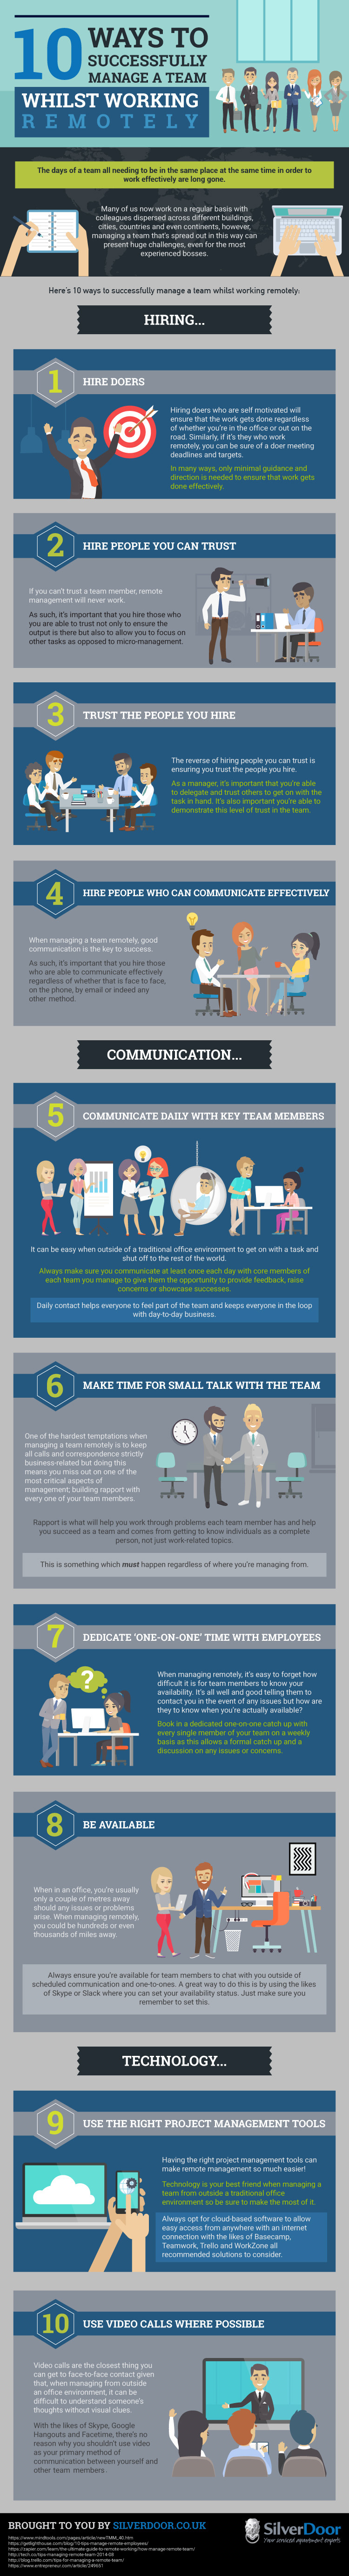 how-to-manage-a-team-remotely